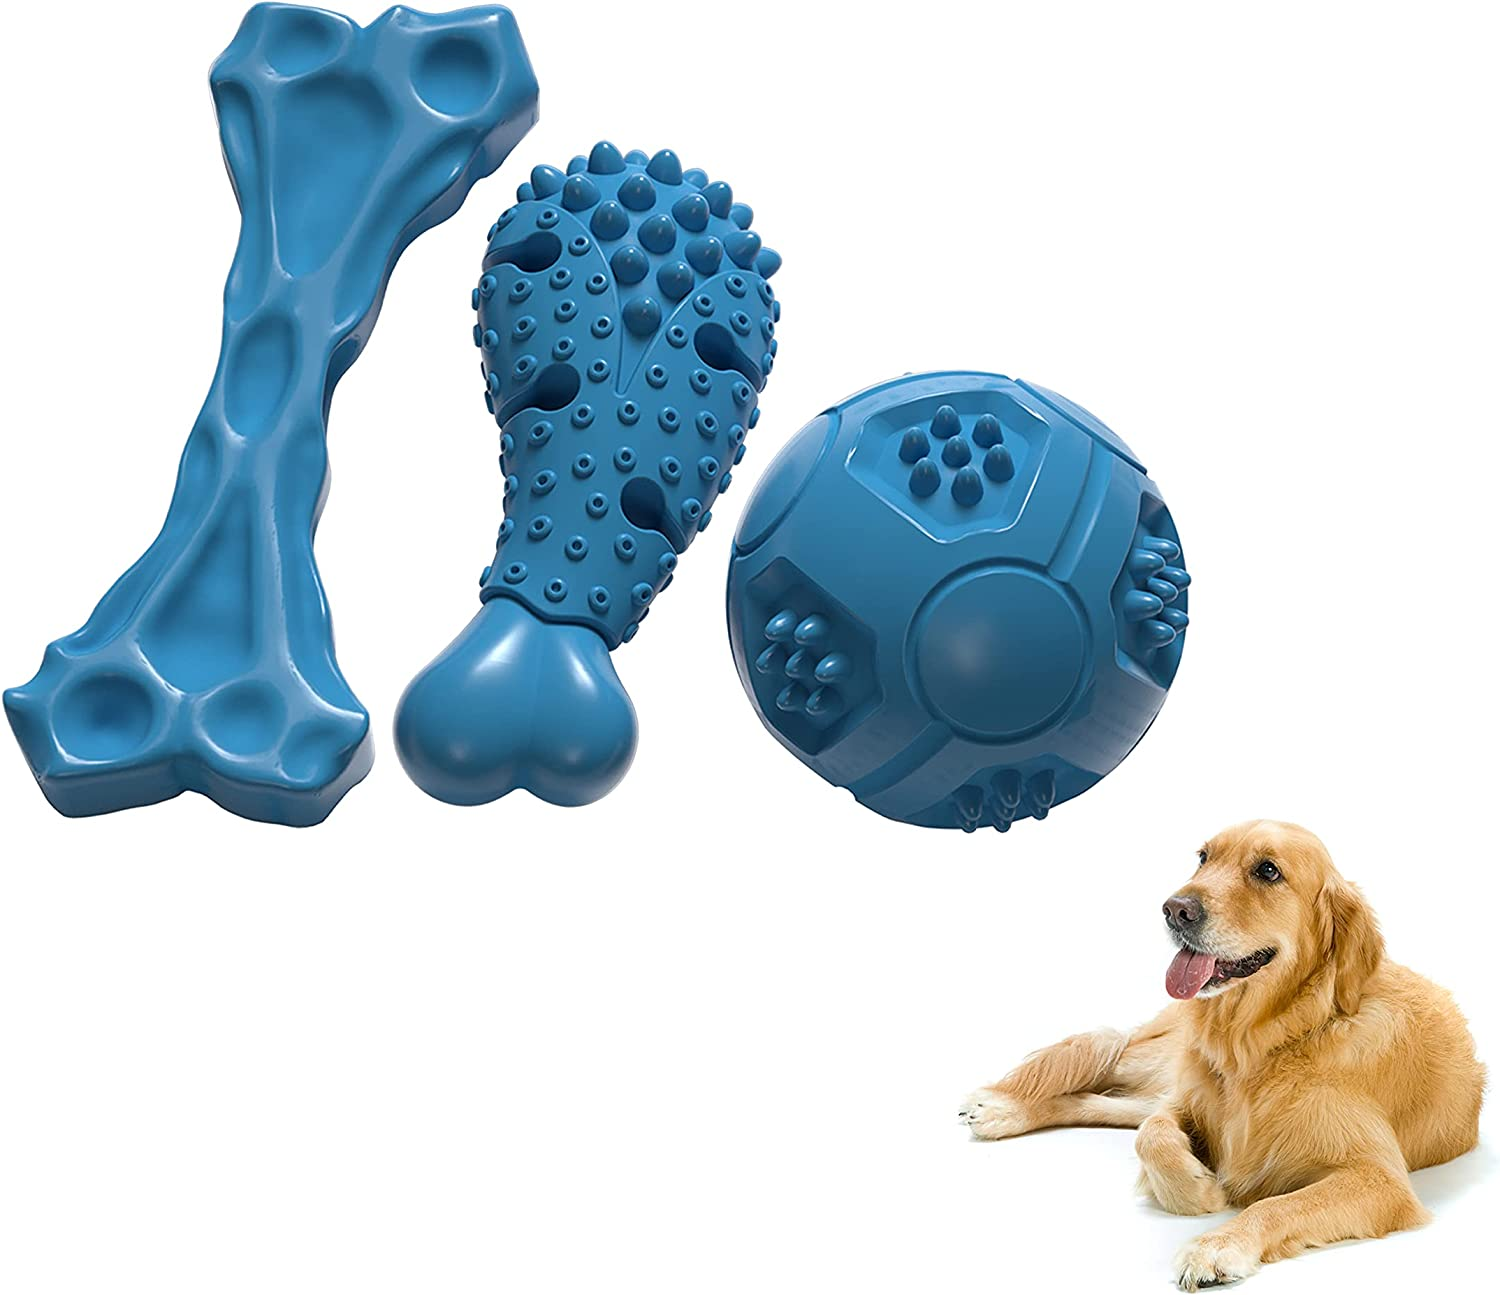 Laika Tough Dog Max 85% Sale item OFF Toys for Aggressive of Chewers Indestruct 3 Set